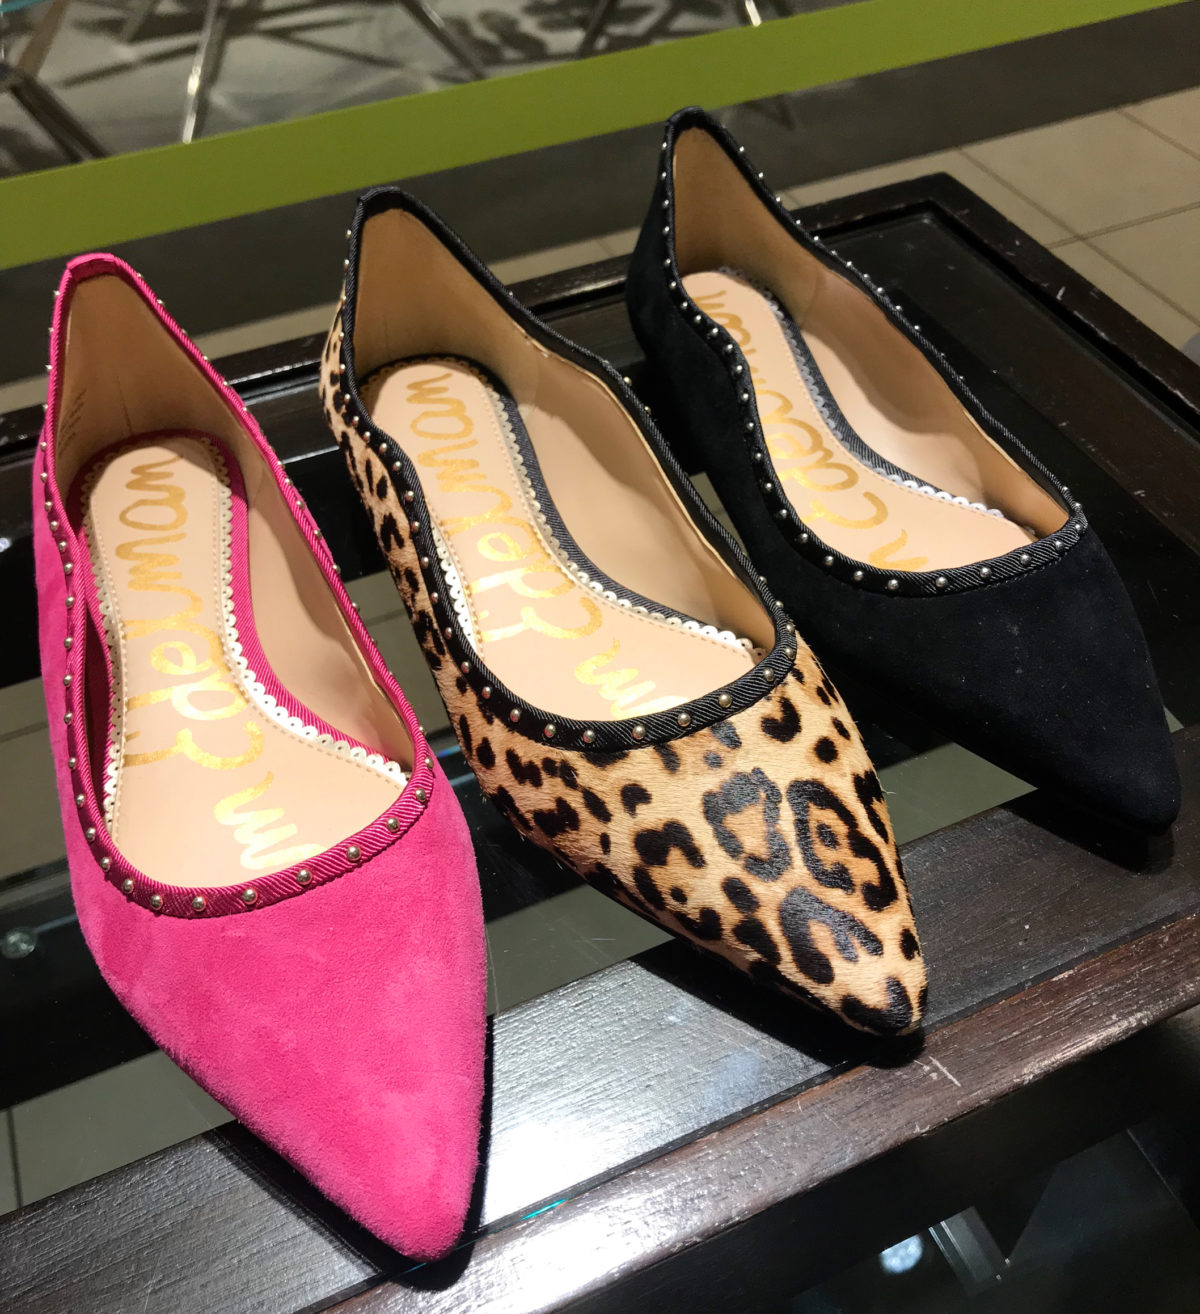 2018 nordstrom anniversary sale sam edelman flats try on haul